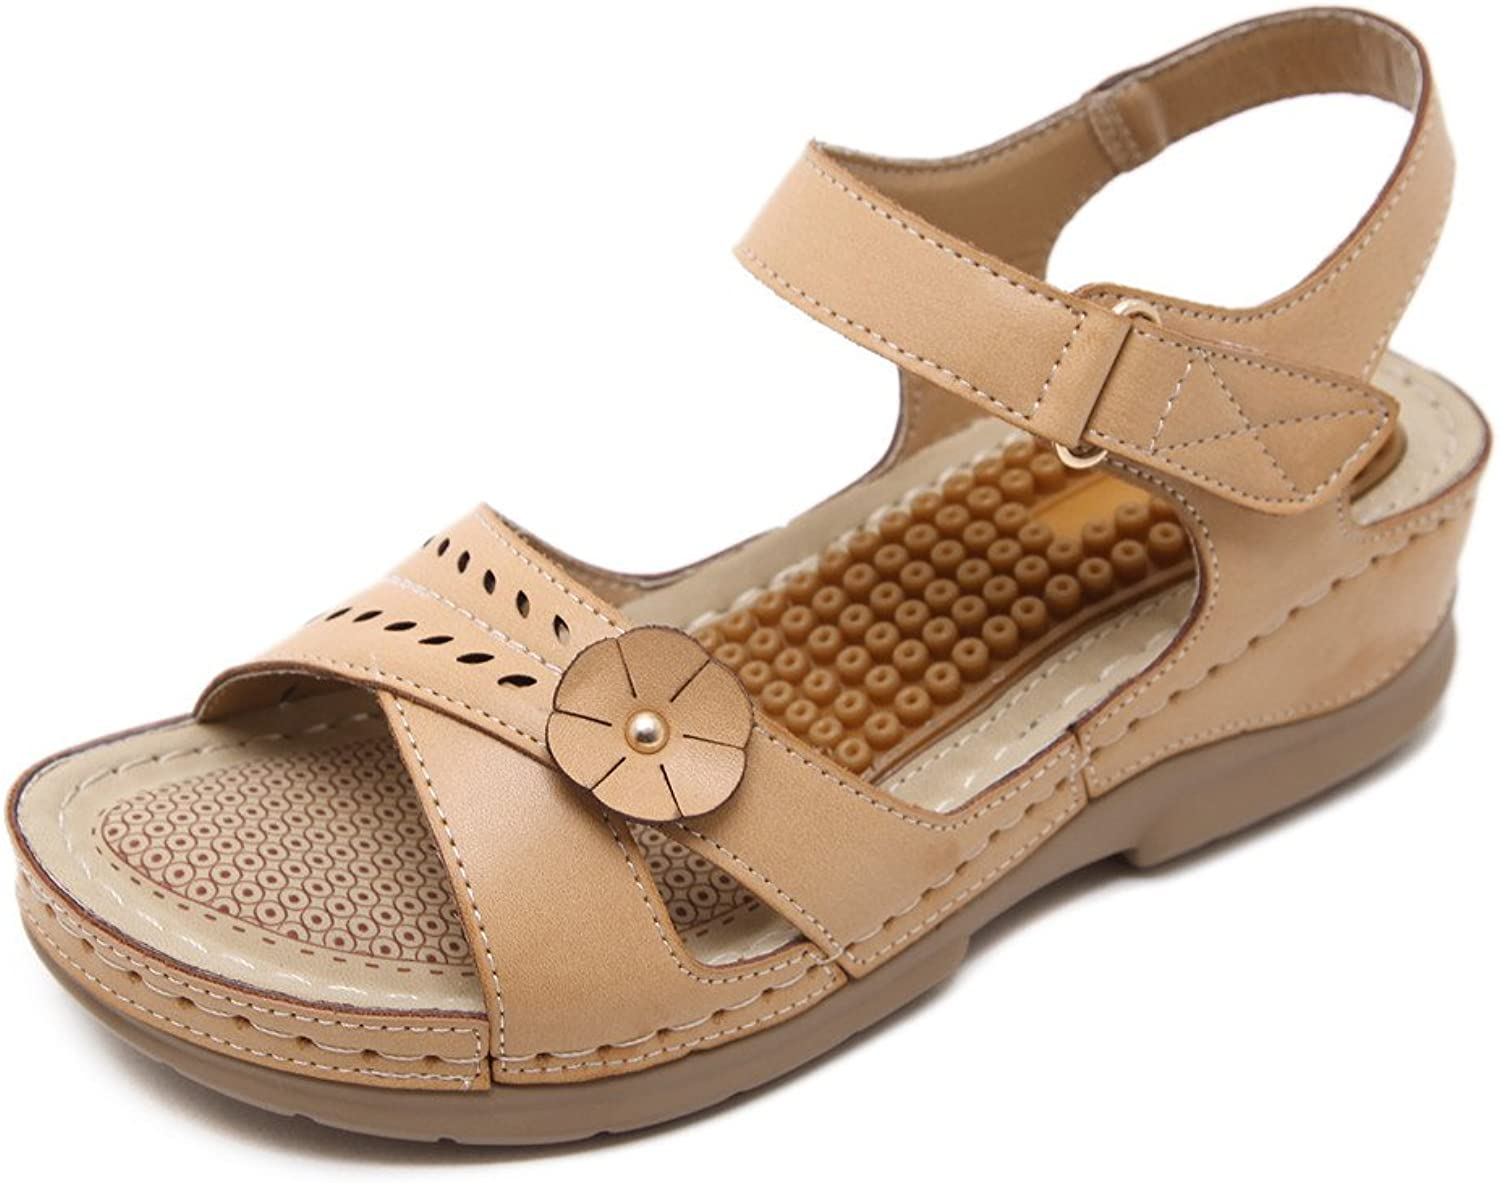 ElFY Woman's Summer Wedge Sandals Low Heel Massage Breathable shoes